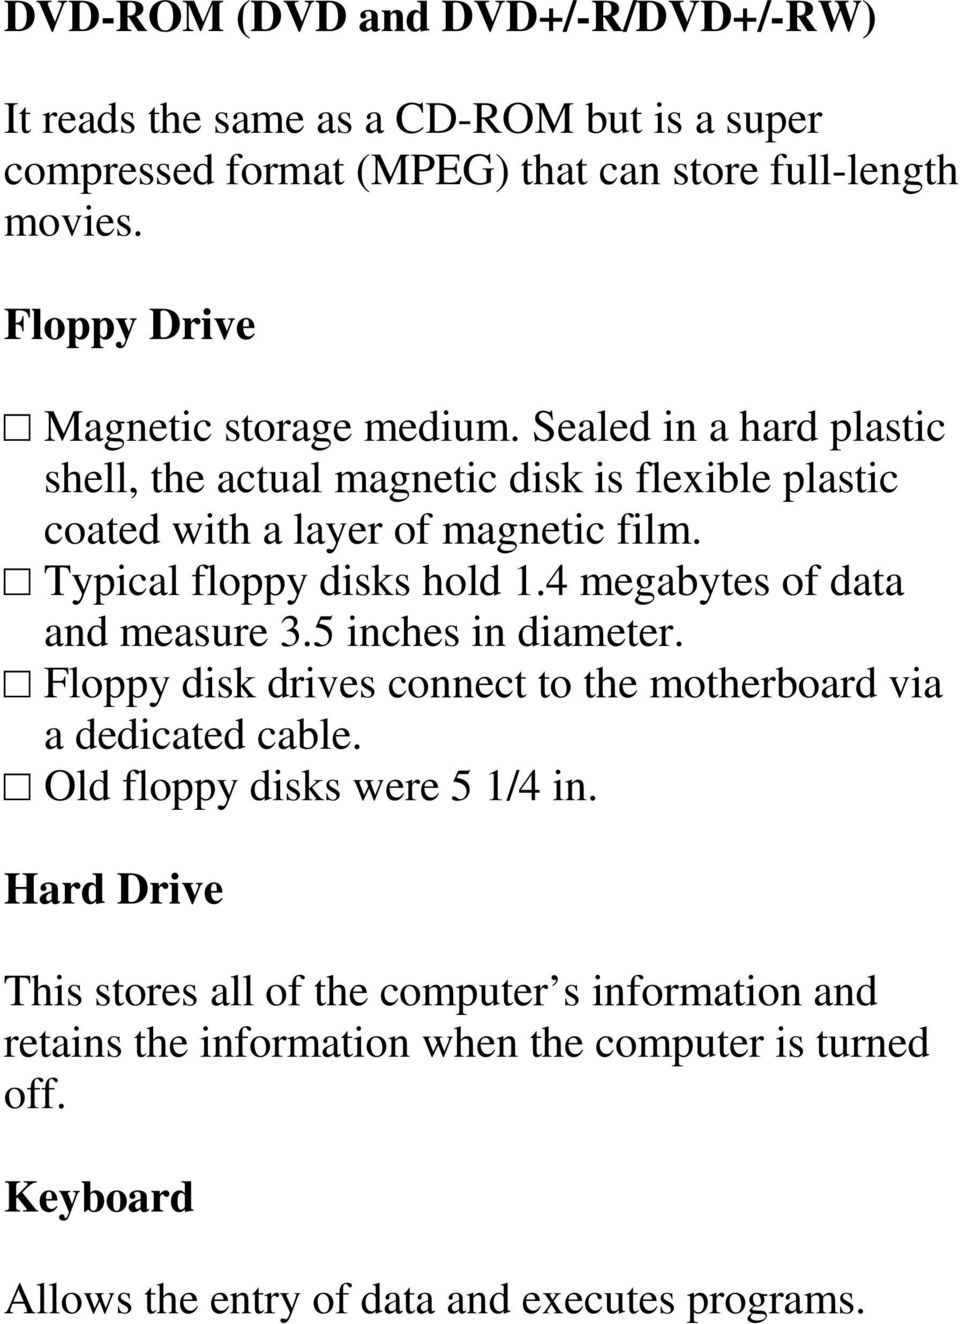 Typical floppy disks hold 1.4 megabytes of data and measure 3.5 inches in diameter. Floppy disk drives connect to the motherboard via a dedicated cable.